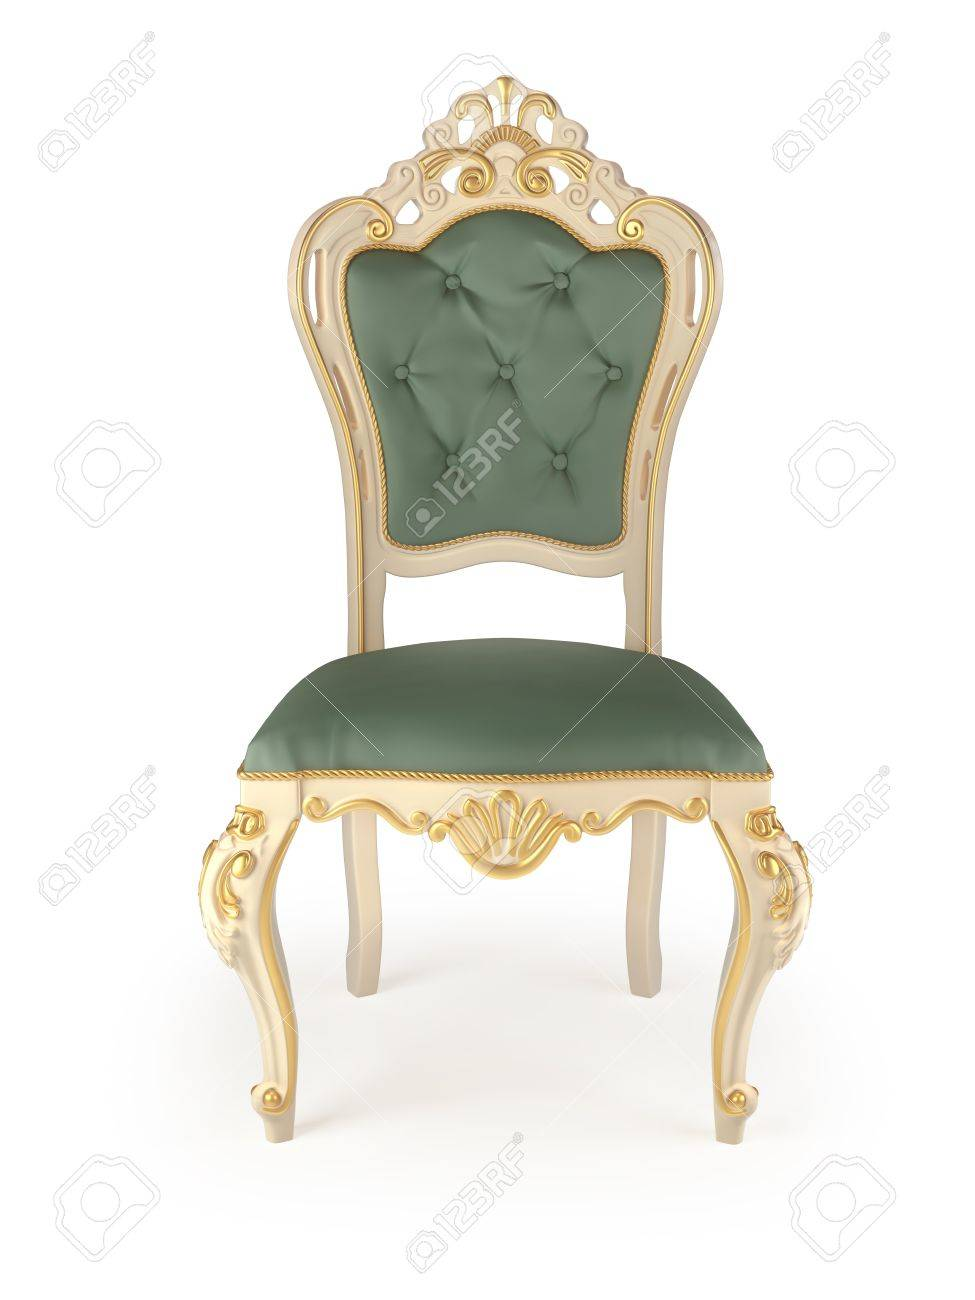 classic chair isolated on white Stock Photo - 9553445